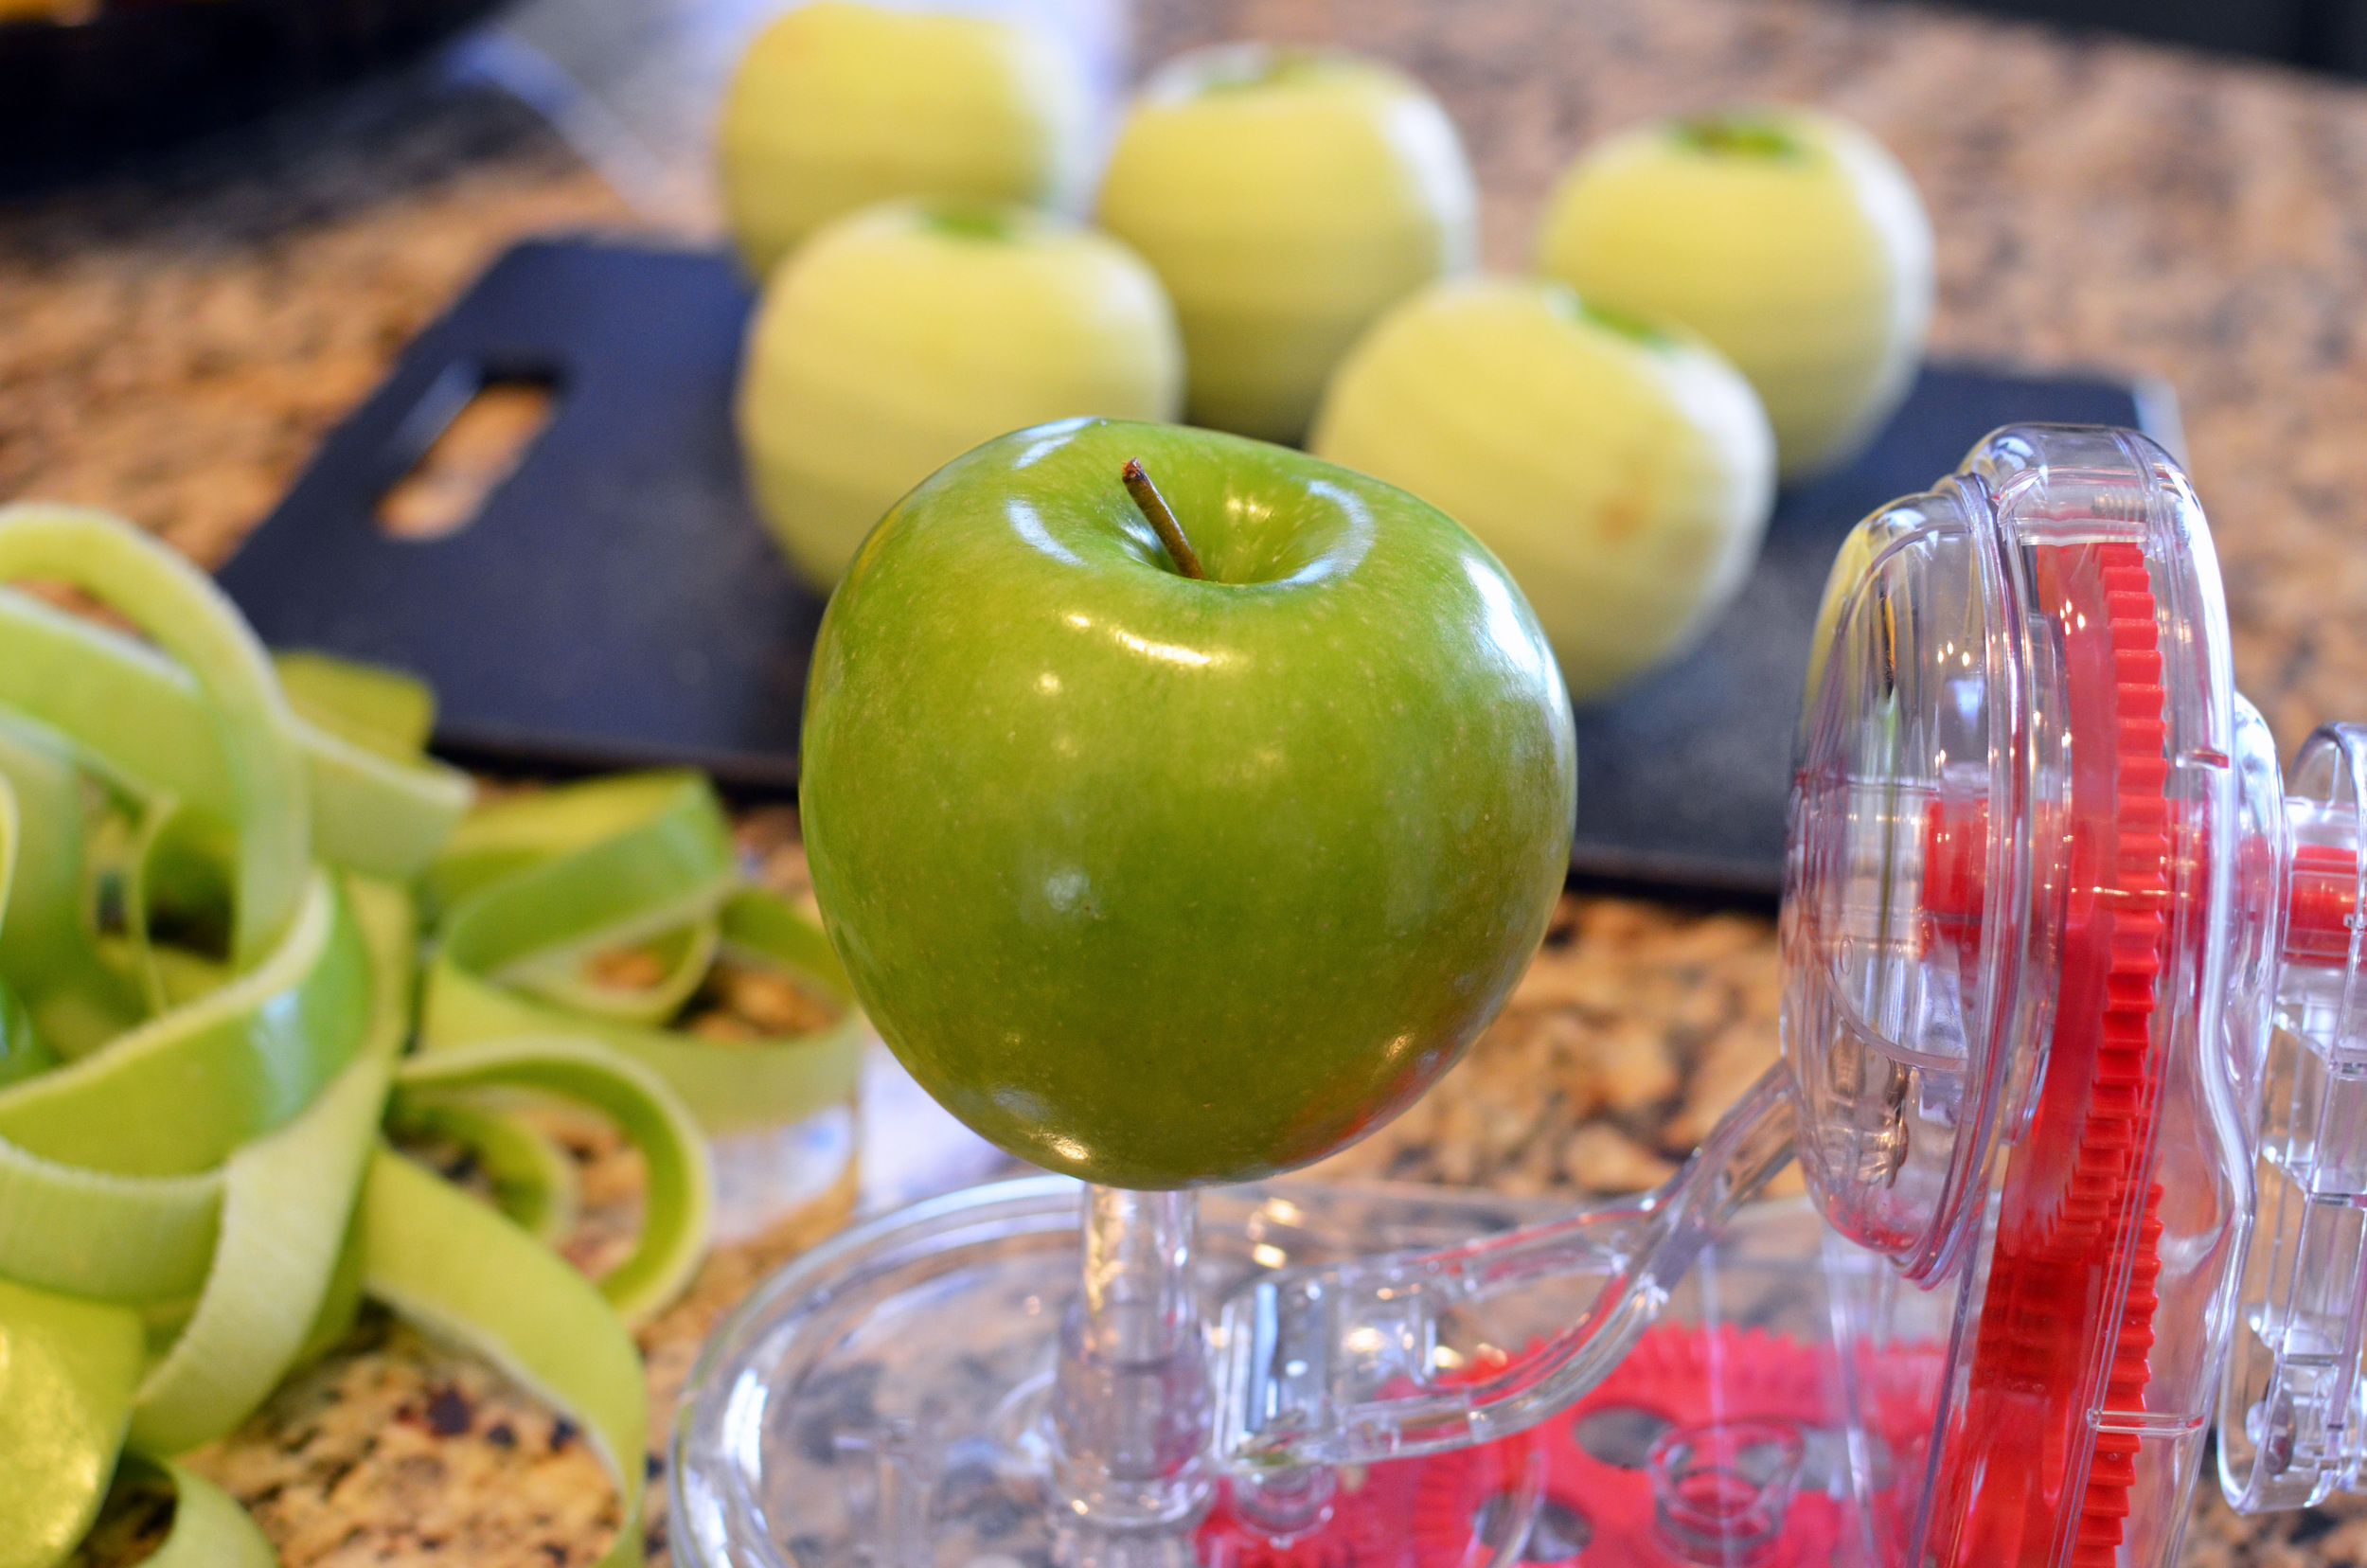 Place an apple on the gadget and turn the hand crank.